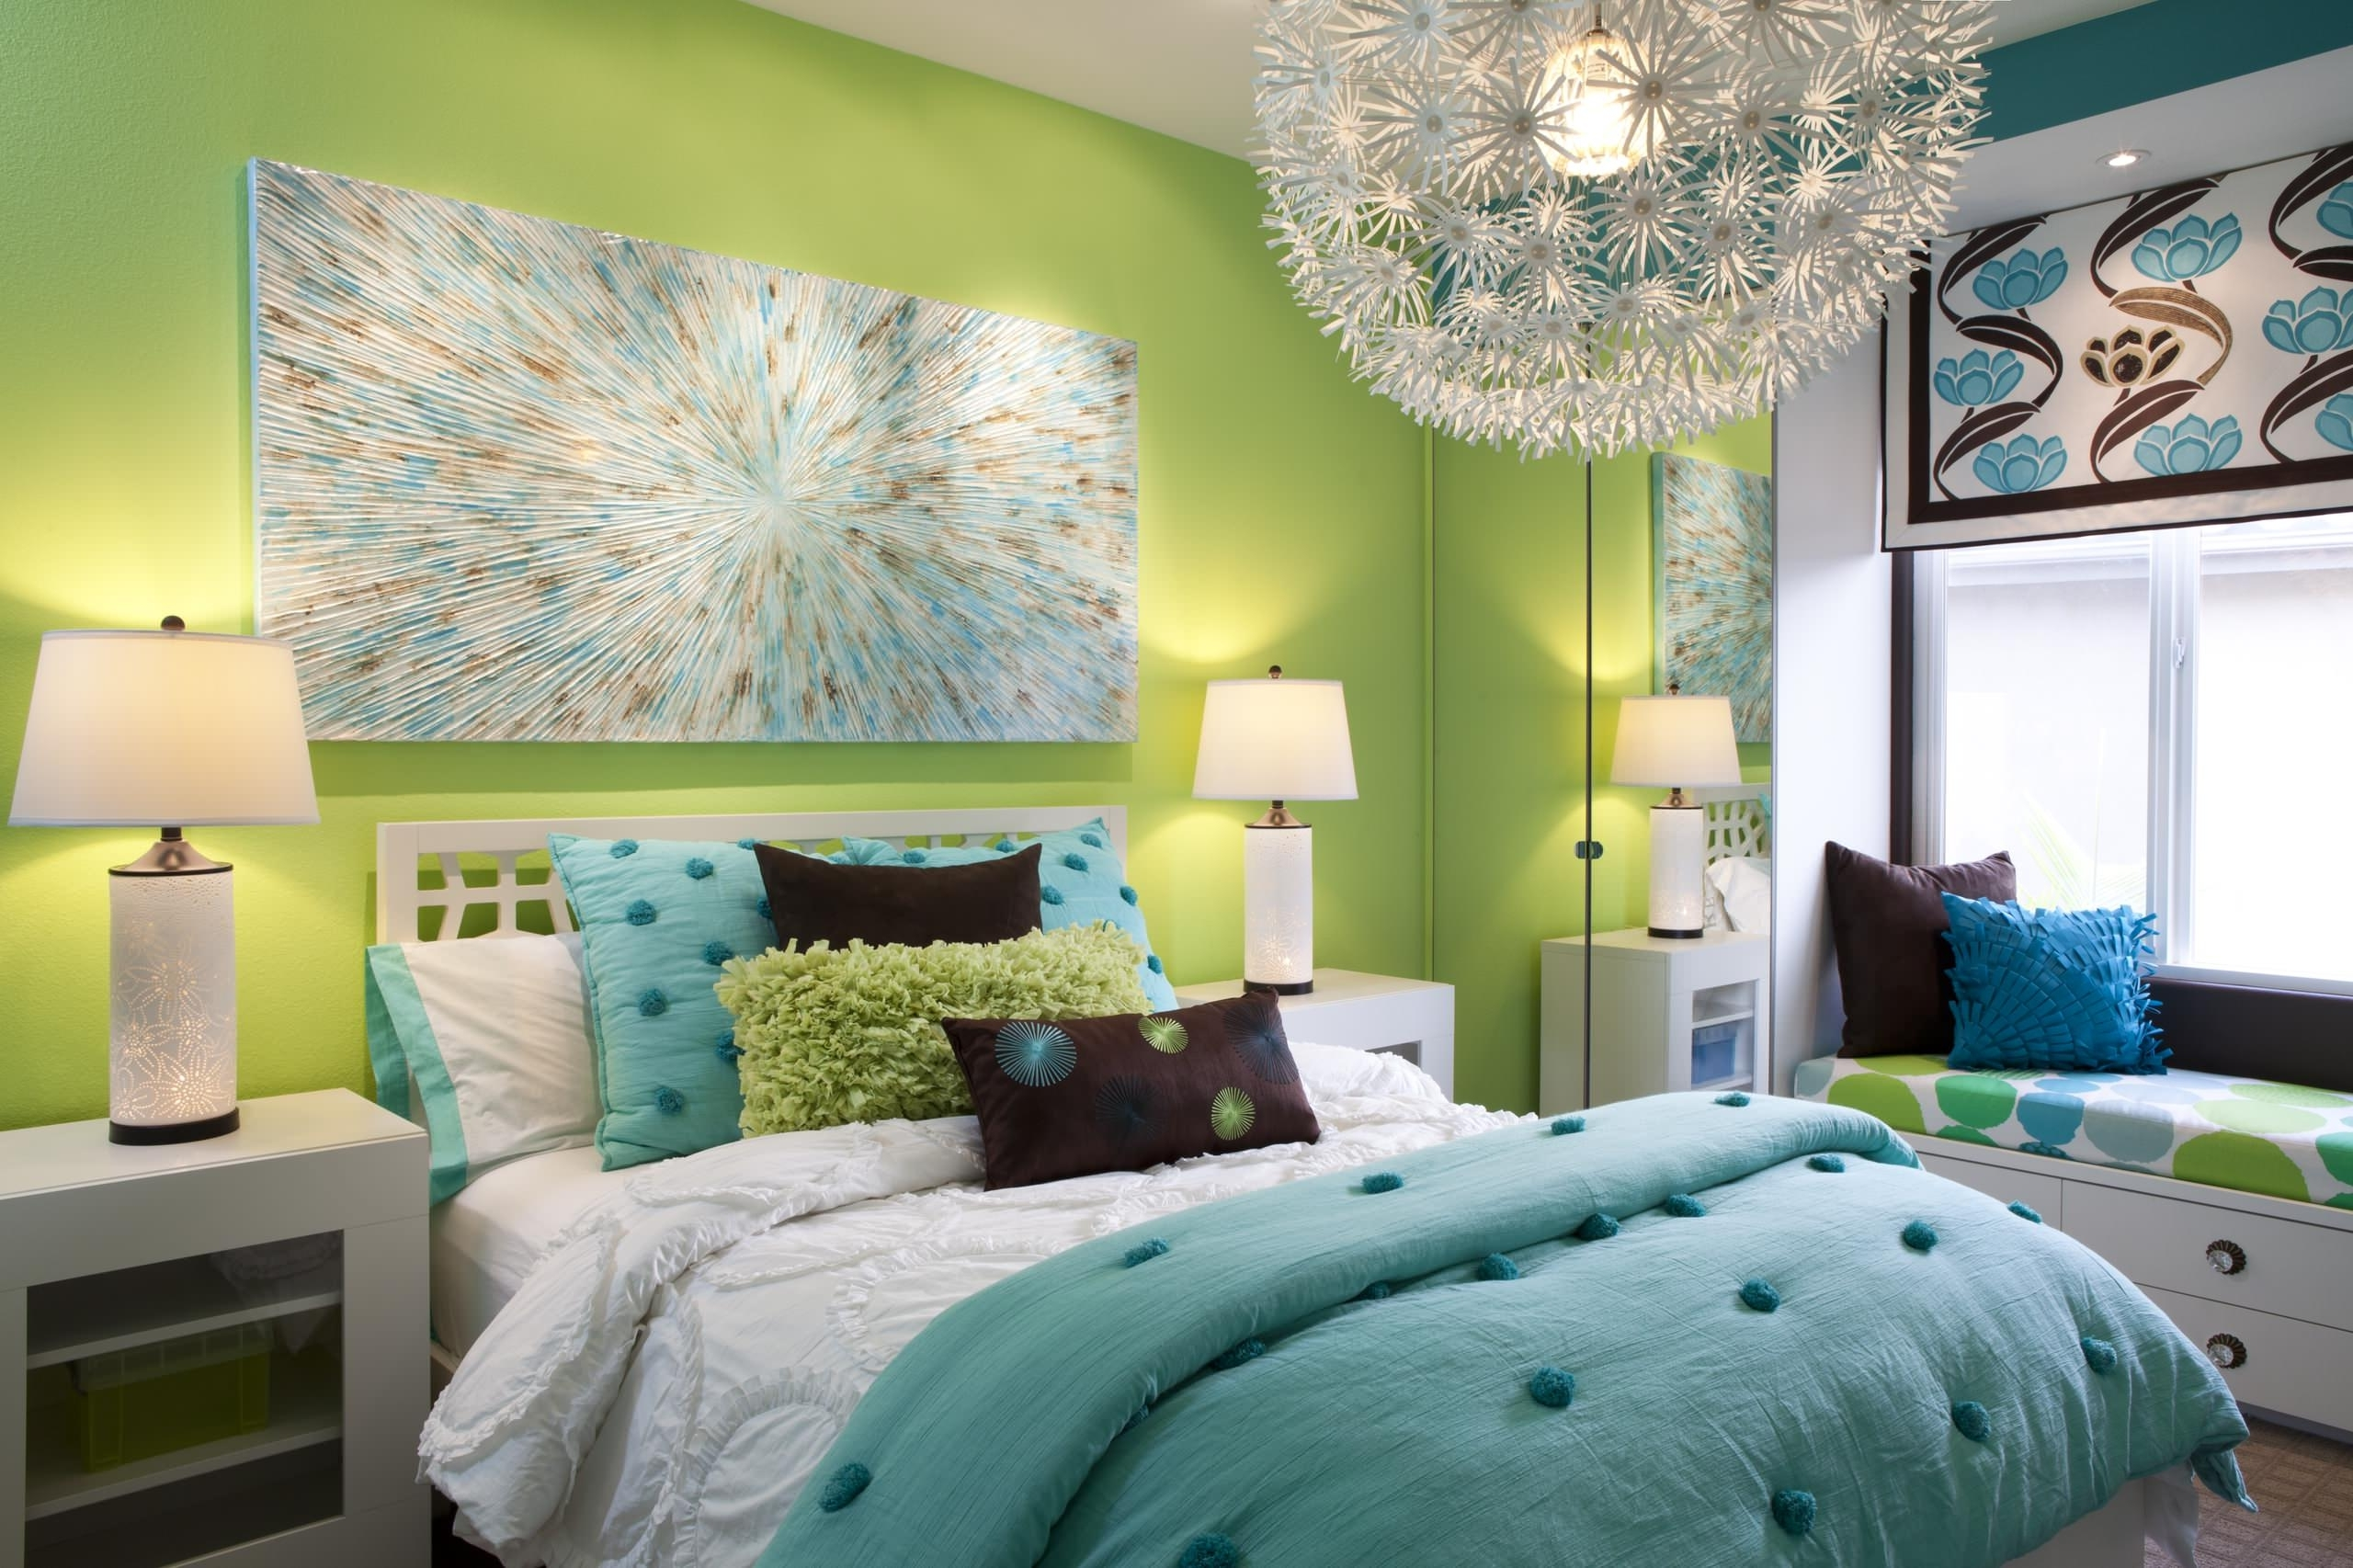 Well Known Bedroom: Nice Turquoise Bedroom Ideas With White Bed And Built In Intended For Turquoise Bedroom Chandeliers (View 17 of 20)